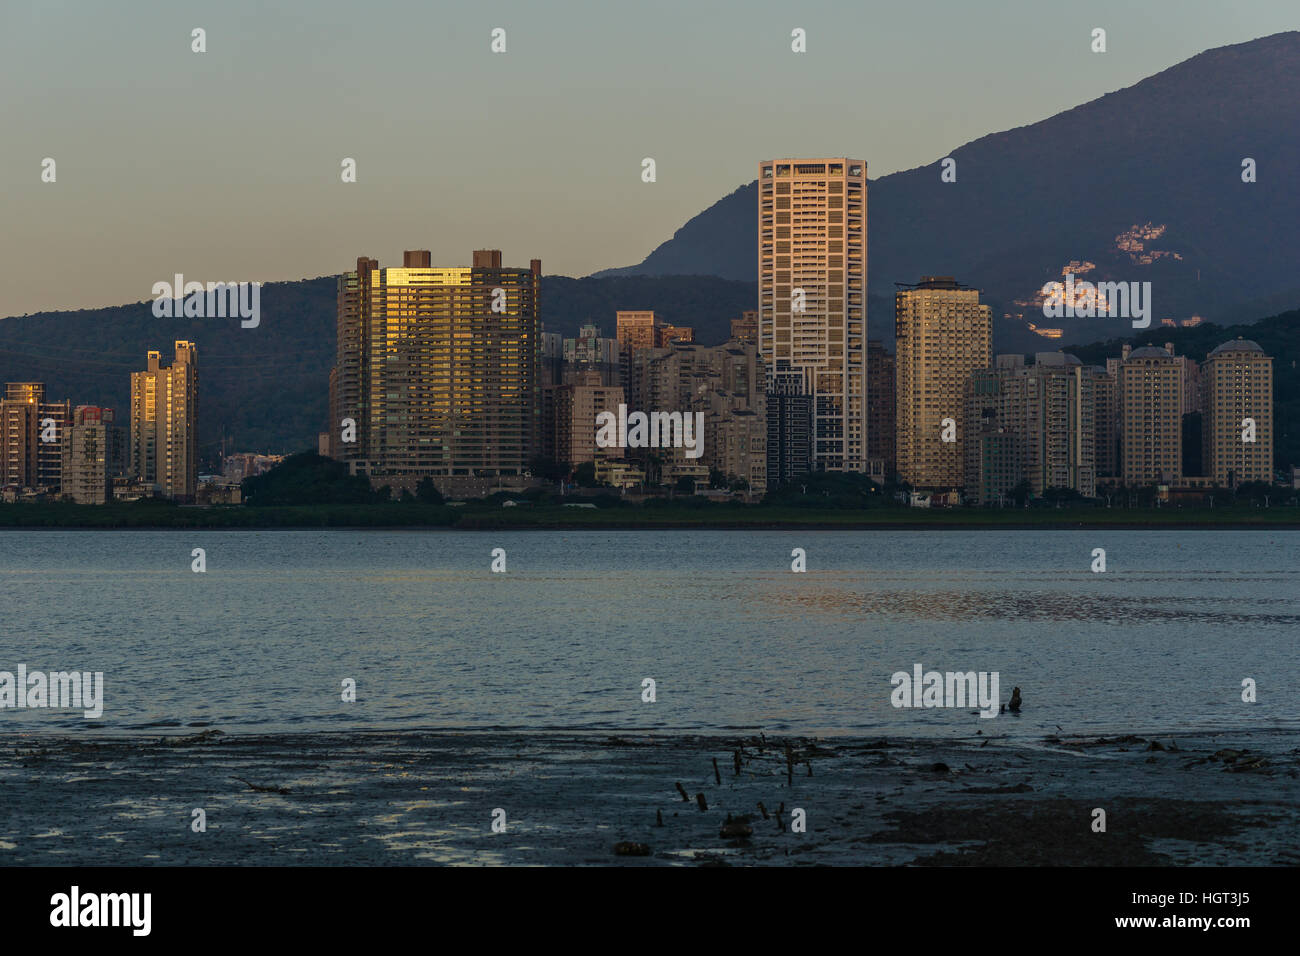 Skylines in the dusk - Stock Image